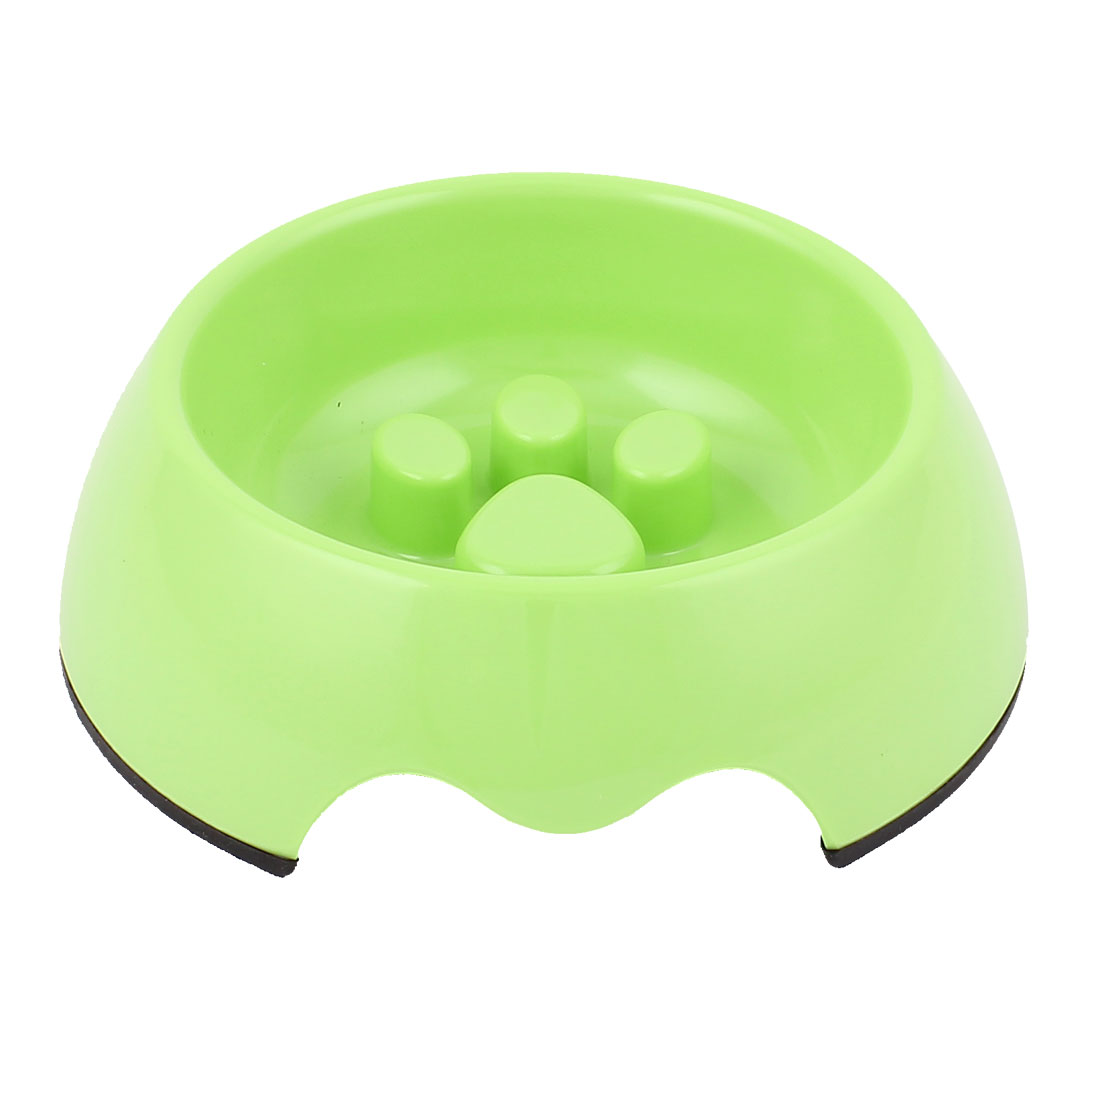 Plastic Pet Dog Puppy Stop Fast Slow Eating Bloat Food Feeder Bowl Green